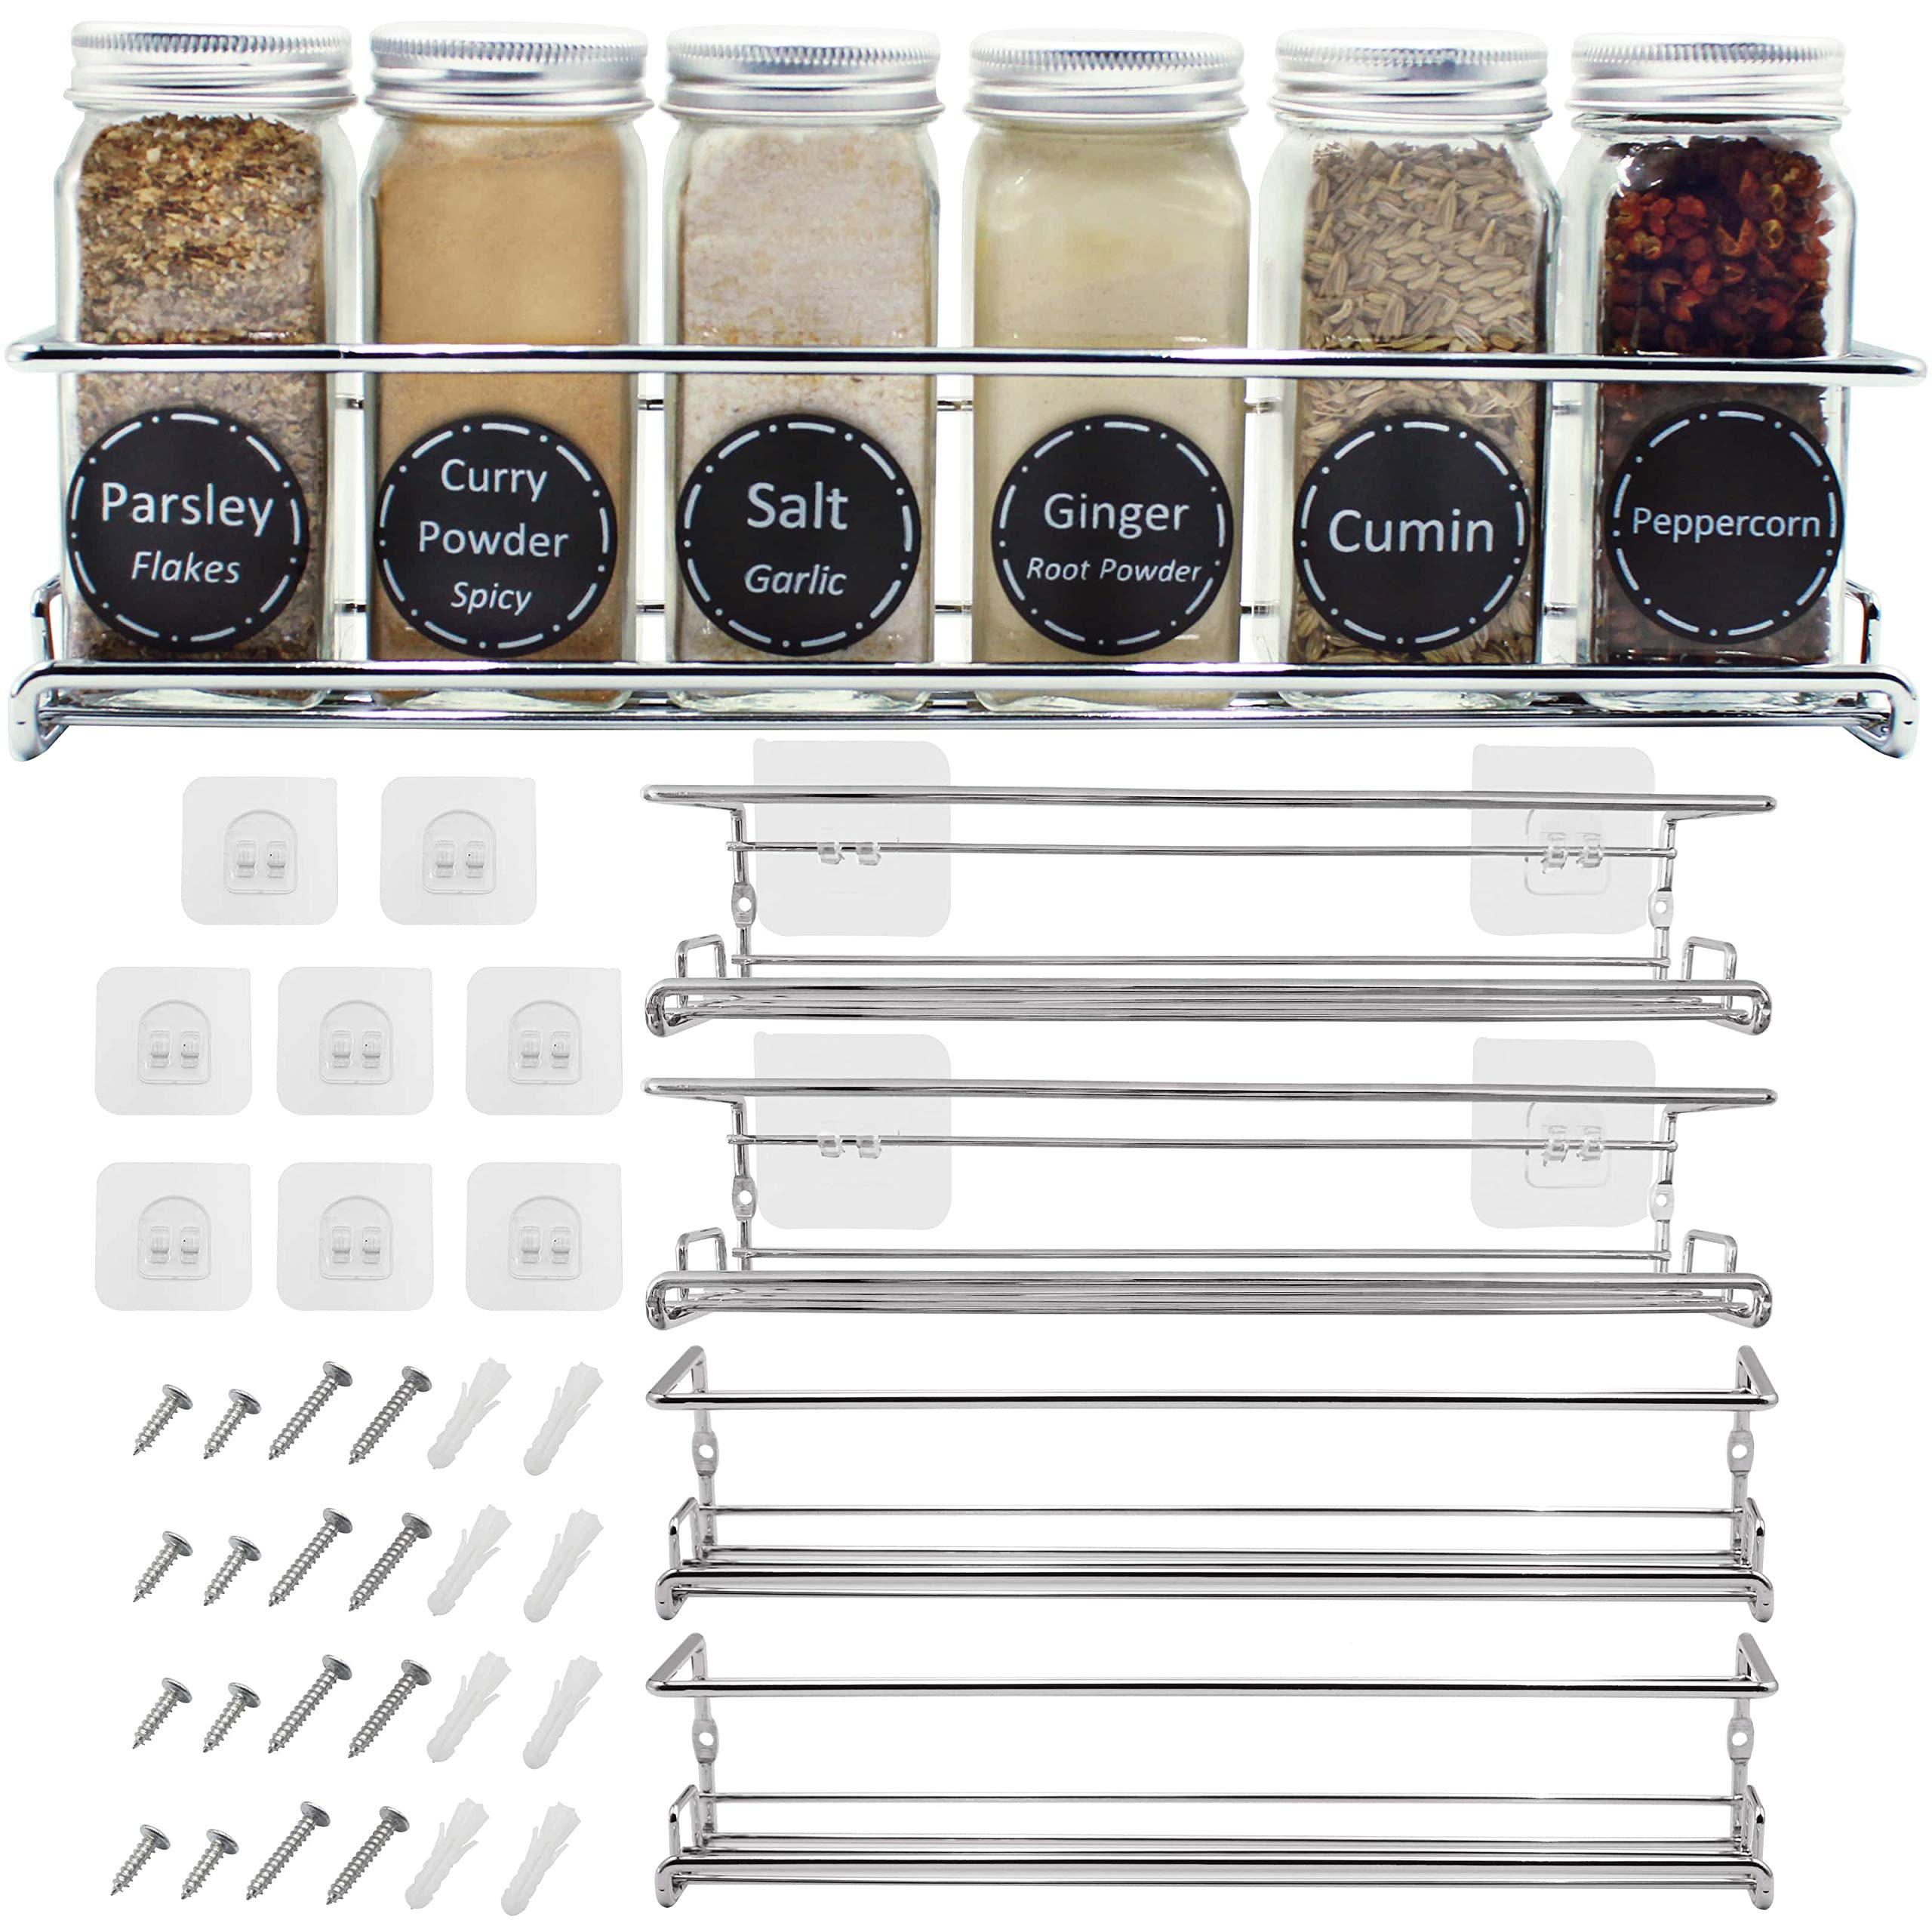 Amazon Com Spice Racks Organizer For Cabinet Door Mount Wall Mounted Unique Racks Design To Secure Jars Set Of 4 Spices Seasoning Chrome Hanging Shelf Kit Storage In Kitchen Pantry